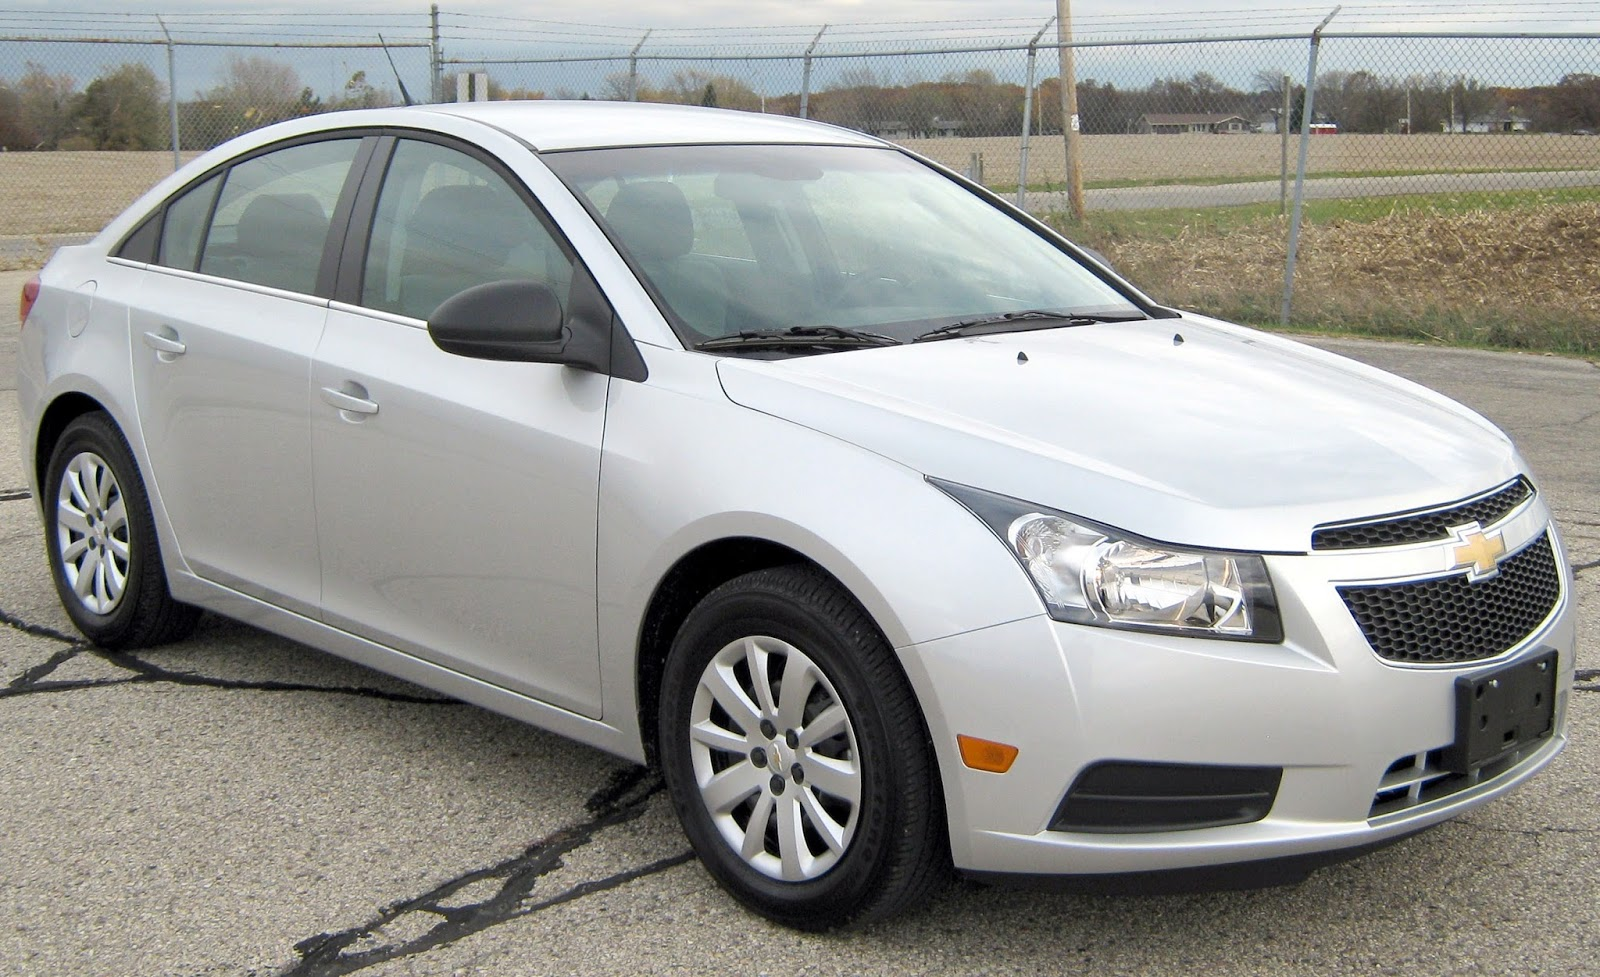 Chevrolet Cruze Ls Sedan Images Car Hd Wallpapers